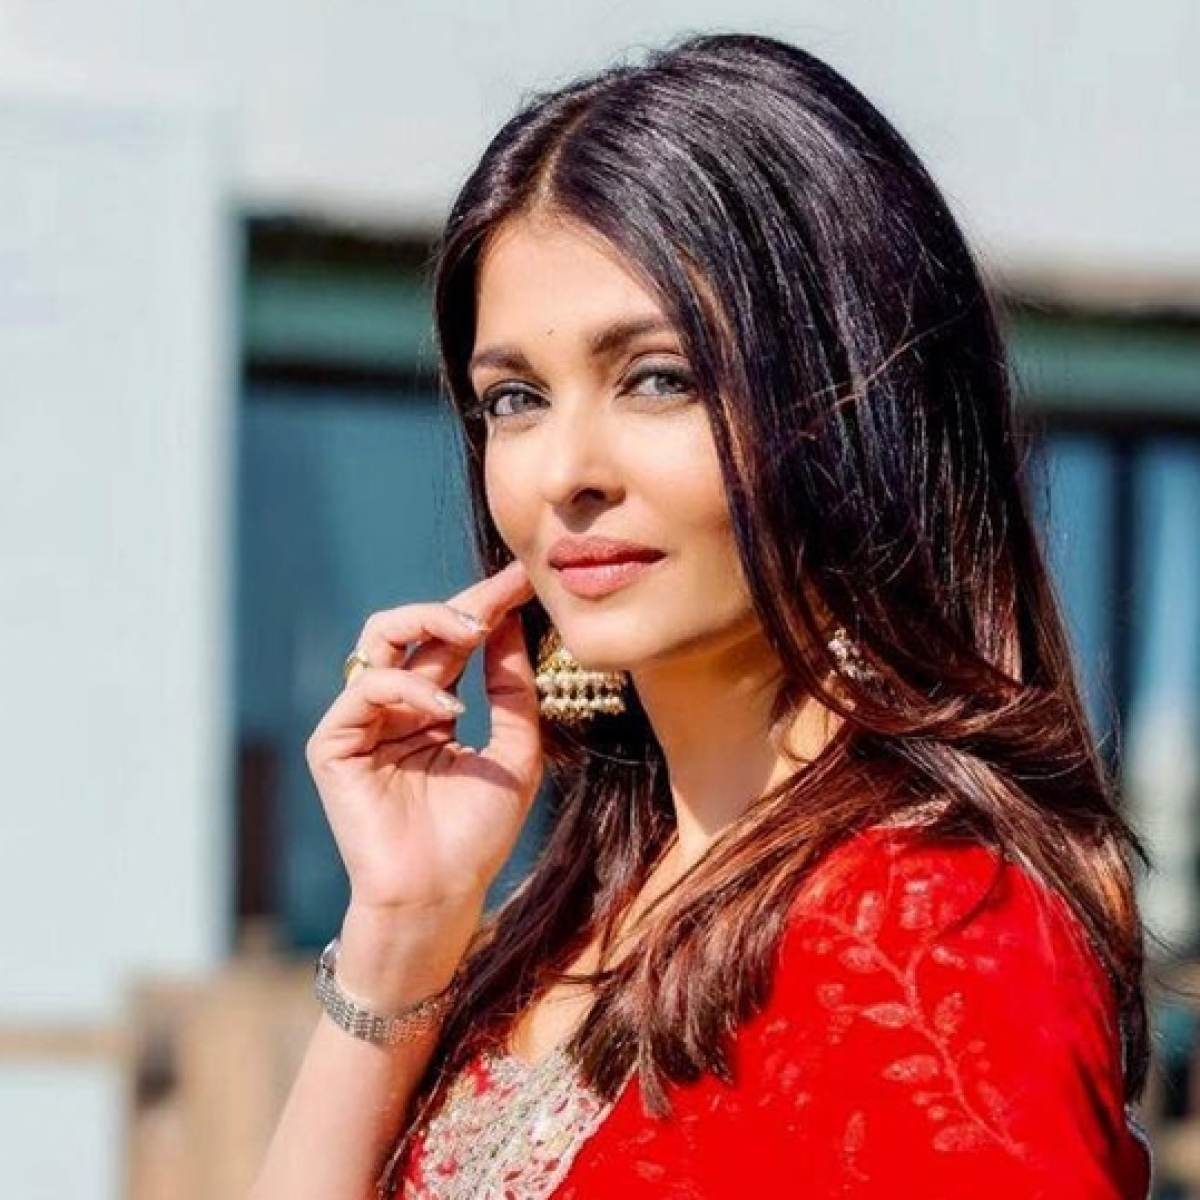 The 'Son' Returns: 32-year-old man claims Aishwarya Rai Bachchan is his 'mother'